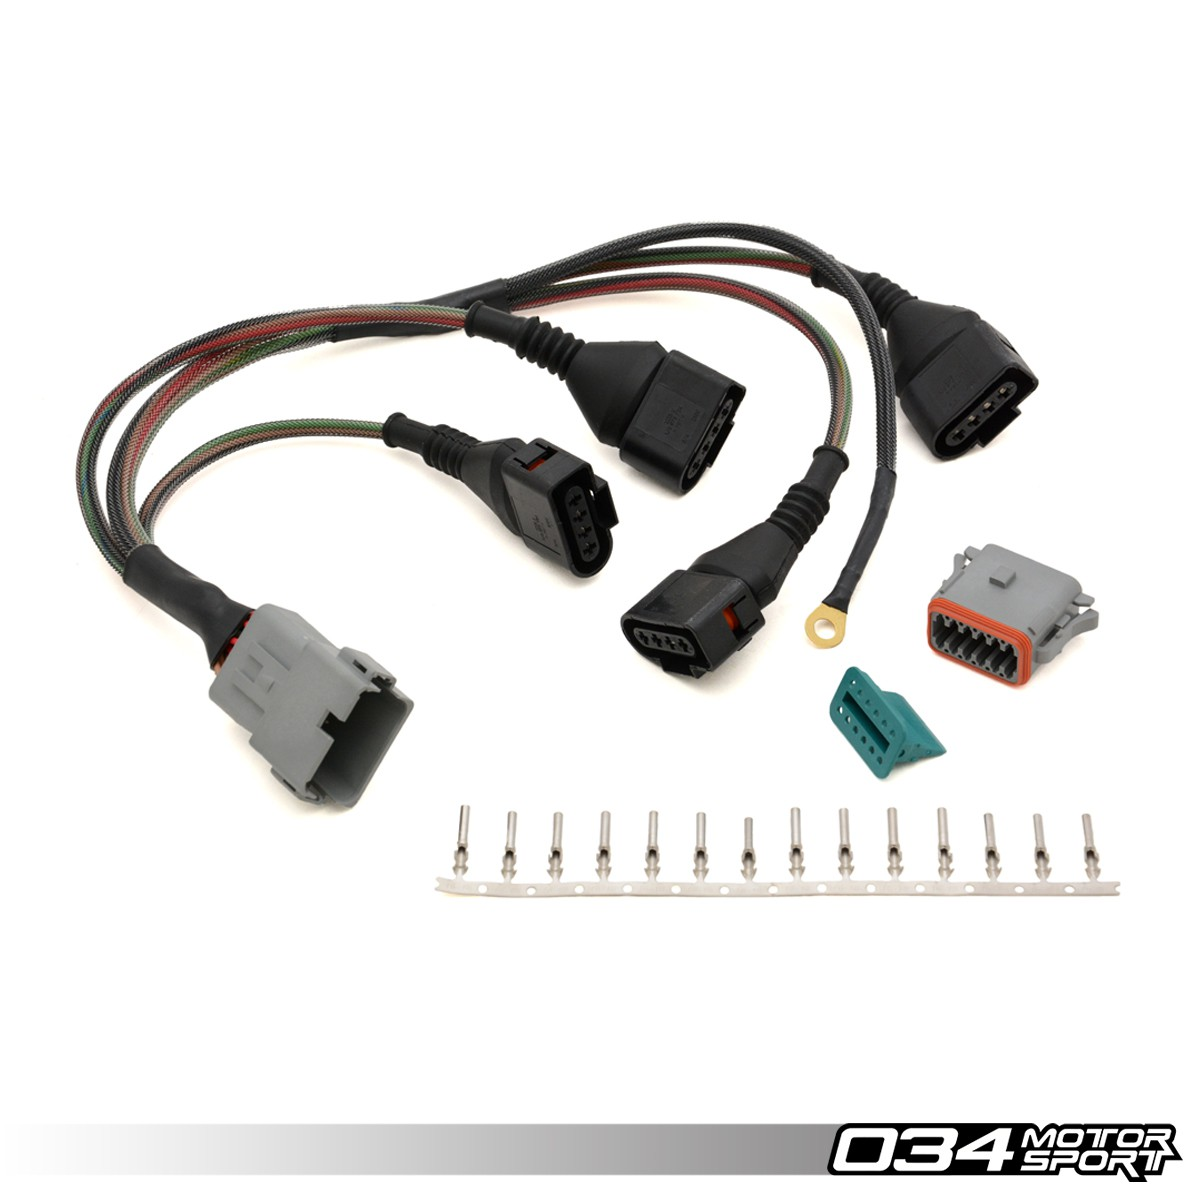 repair update harness audi volkswagen 18t with 4 wire coils 034motorsport 034 701 0004 2 repair update harness, audi volkswagen 1 8t with 4 wire coils  at creativeand.co